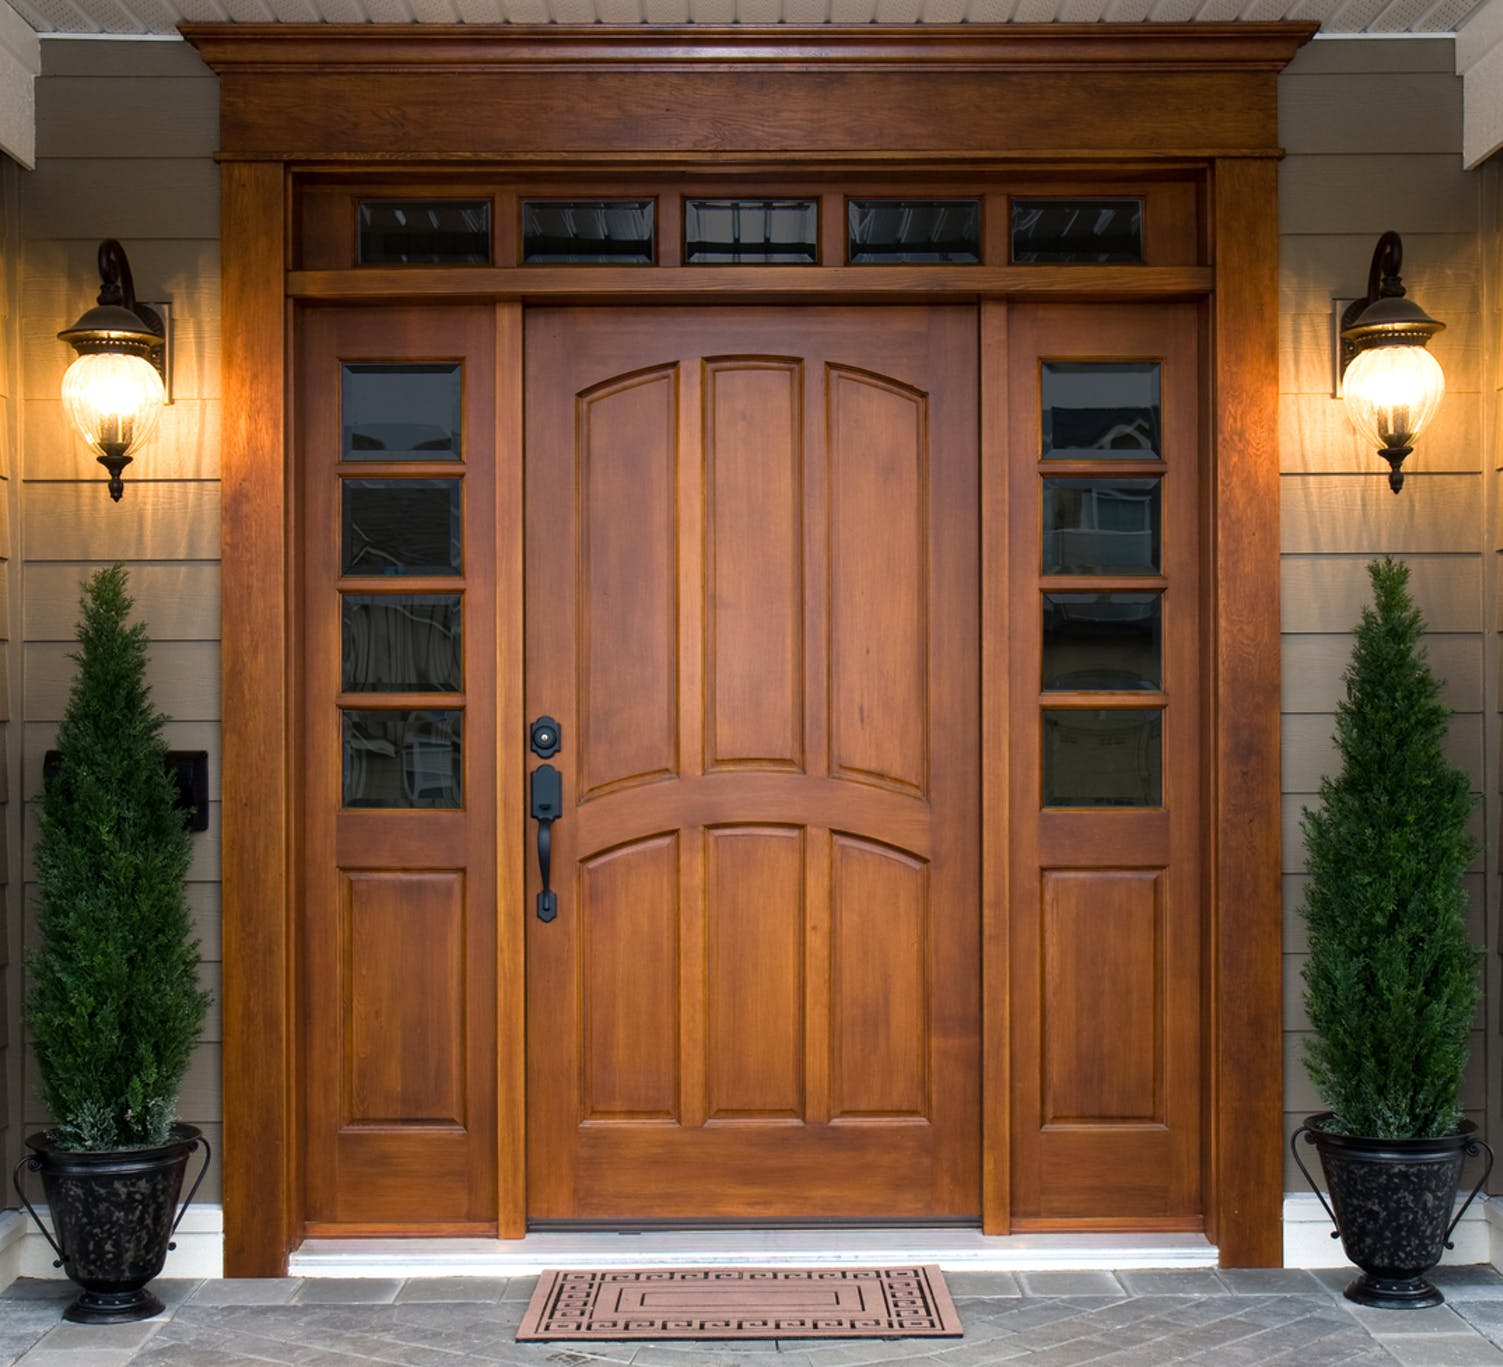 Elegant and classic wood door with sidelites and transom lites.